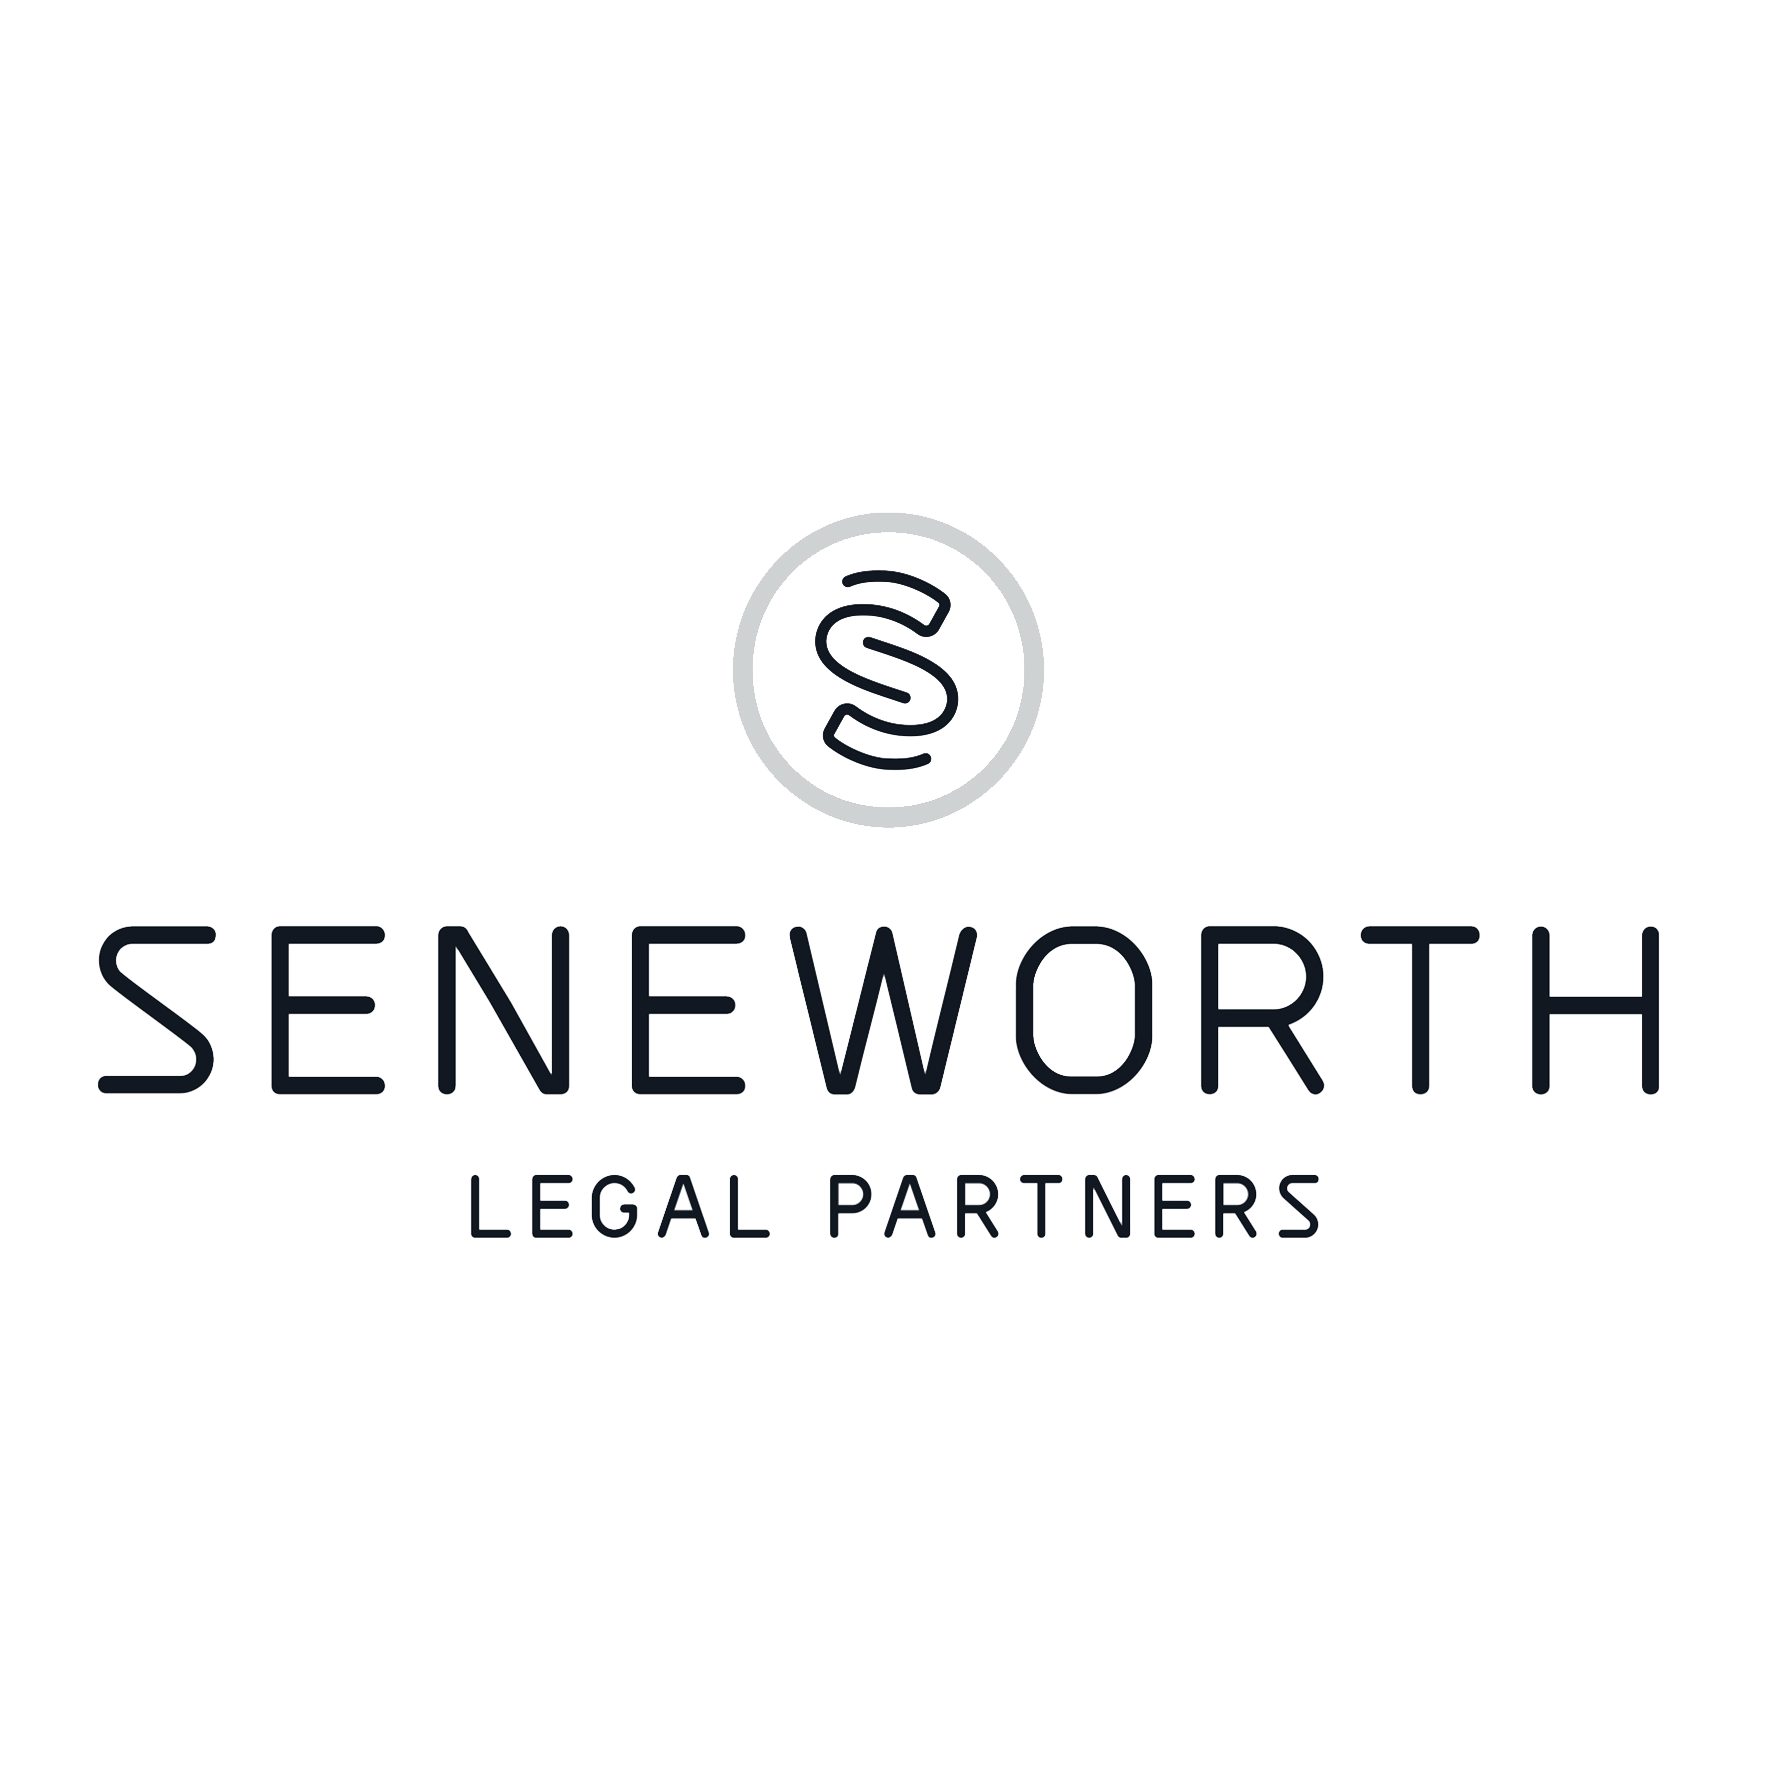 Seneworth